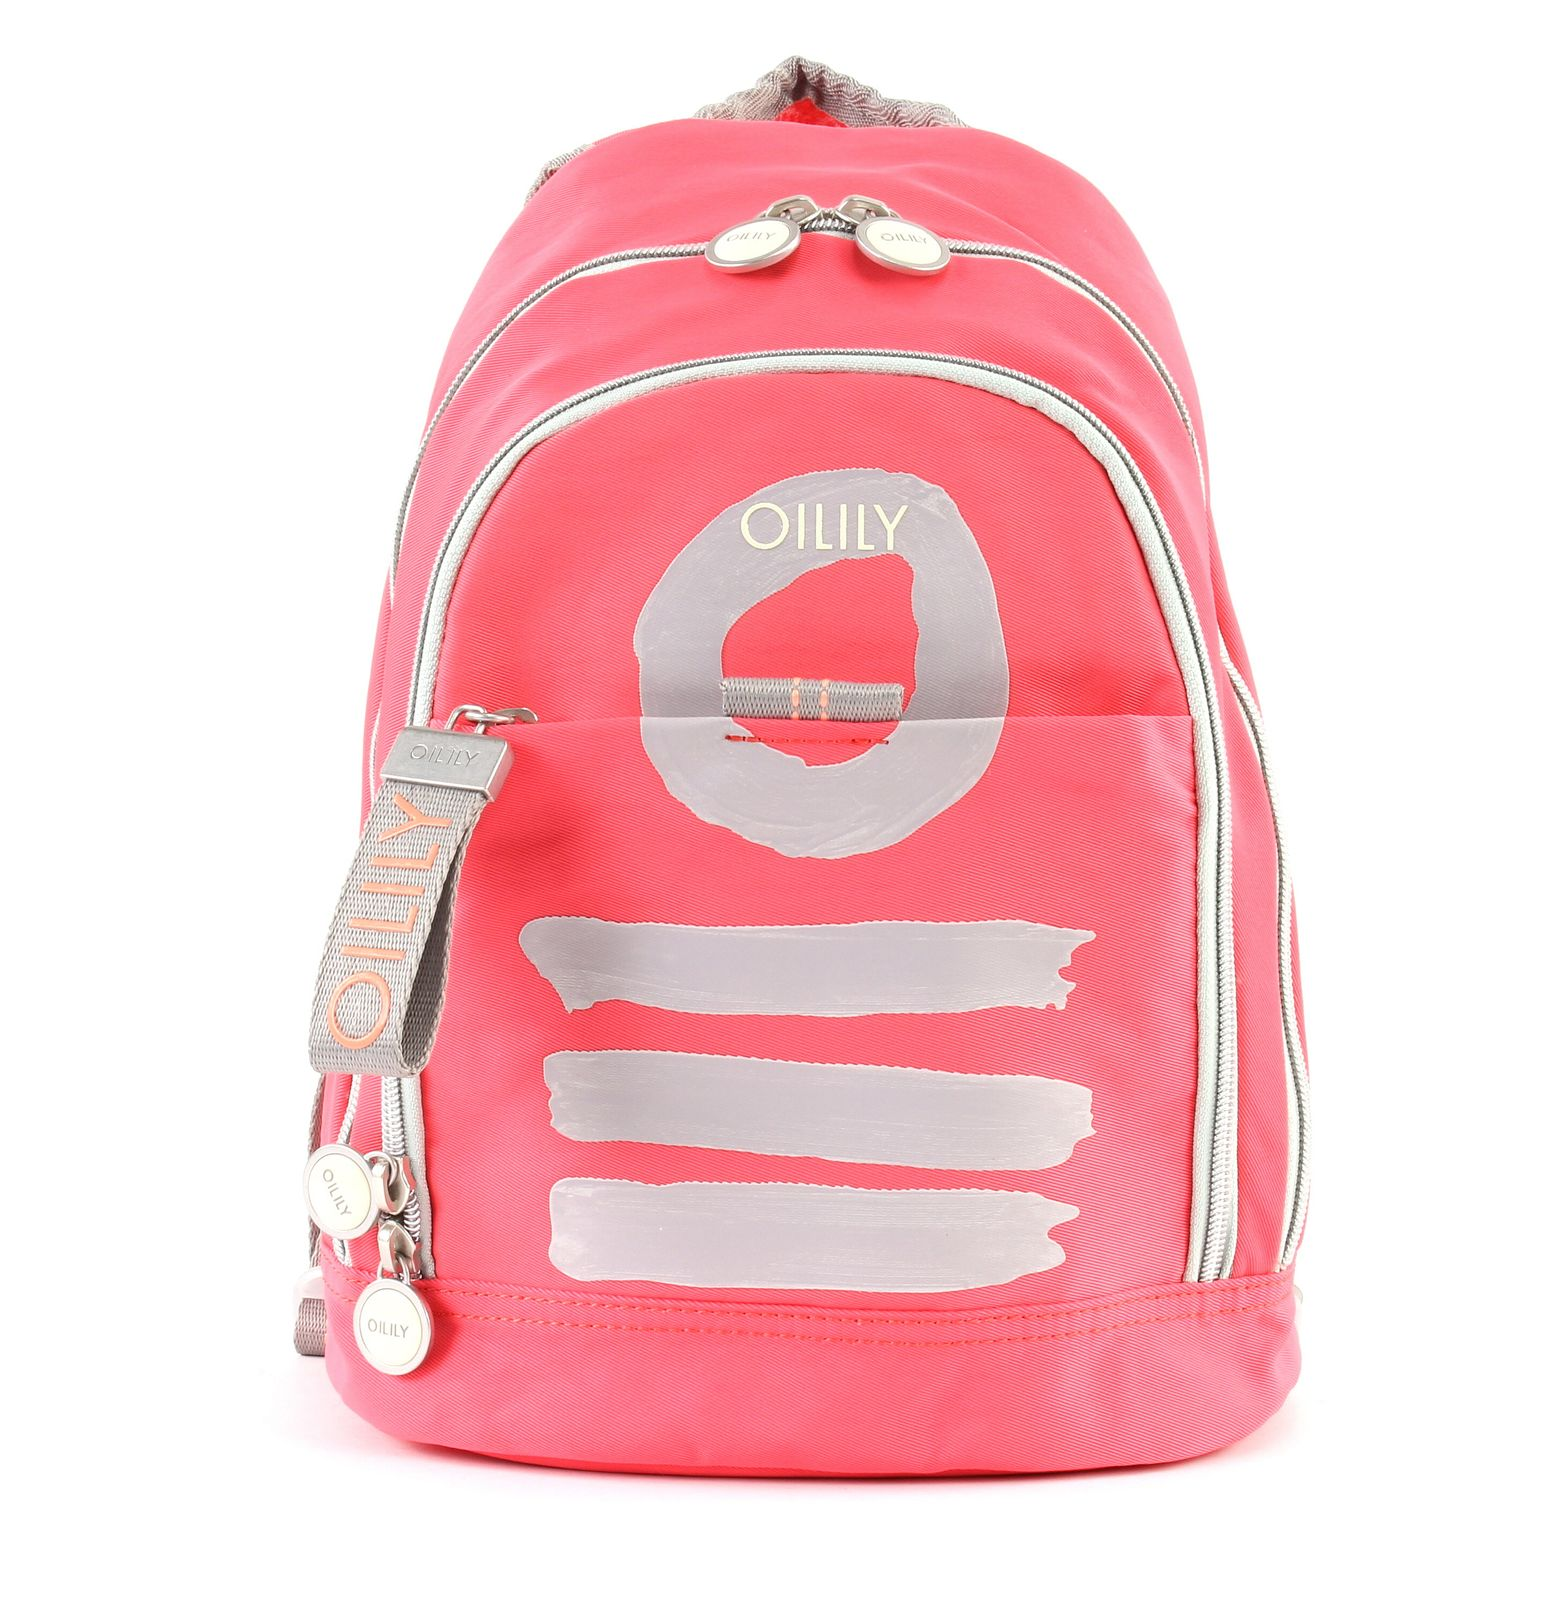 Backpack Svz Oilily Pink Nylon Fun qpwYF